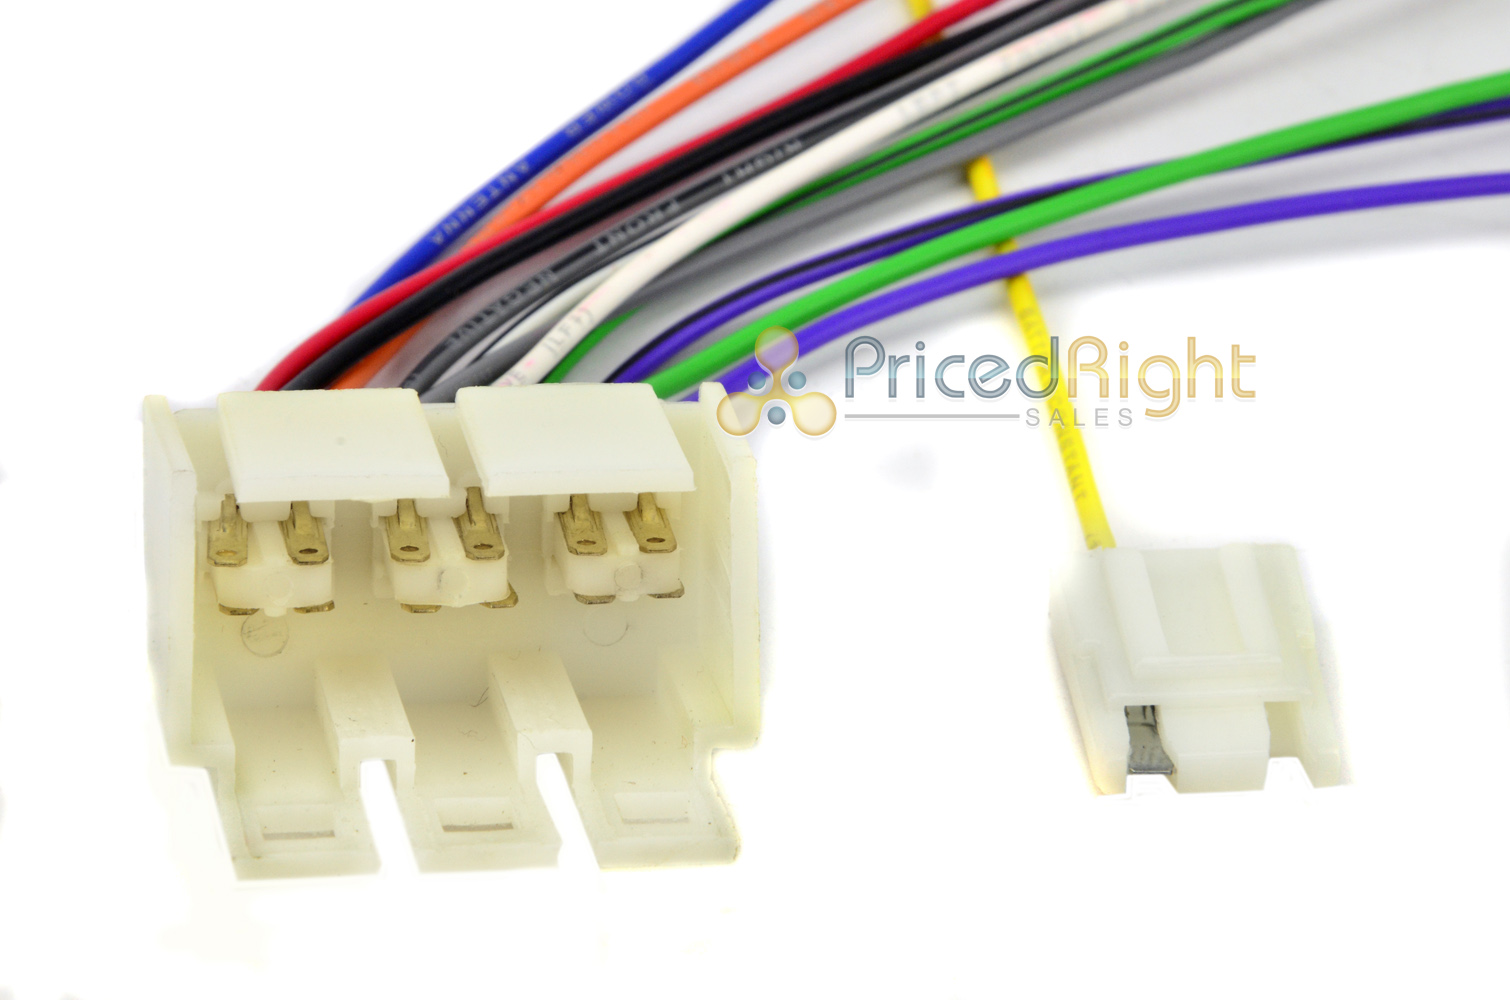 hight resolution of early gm car stereo wiring harness for aftermarket radio cd player installation